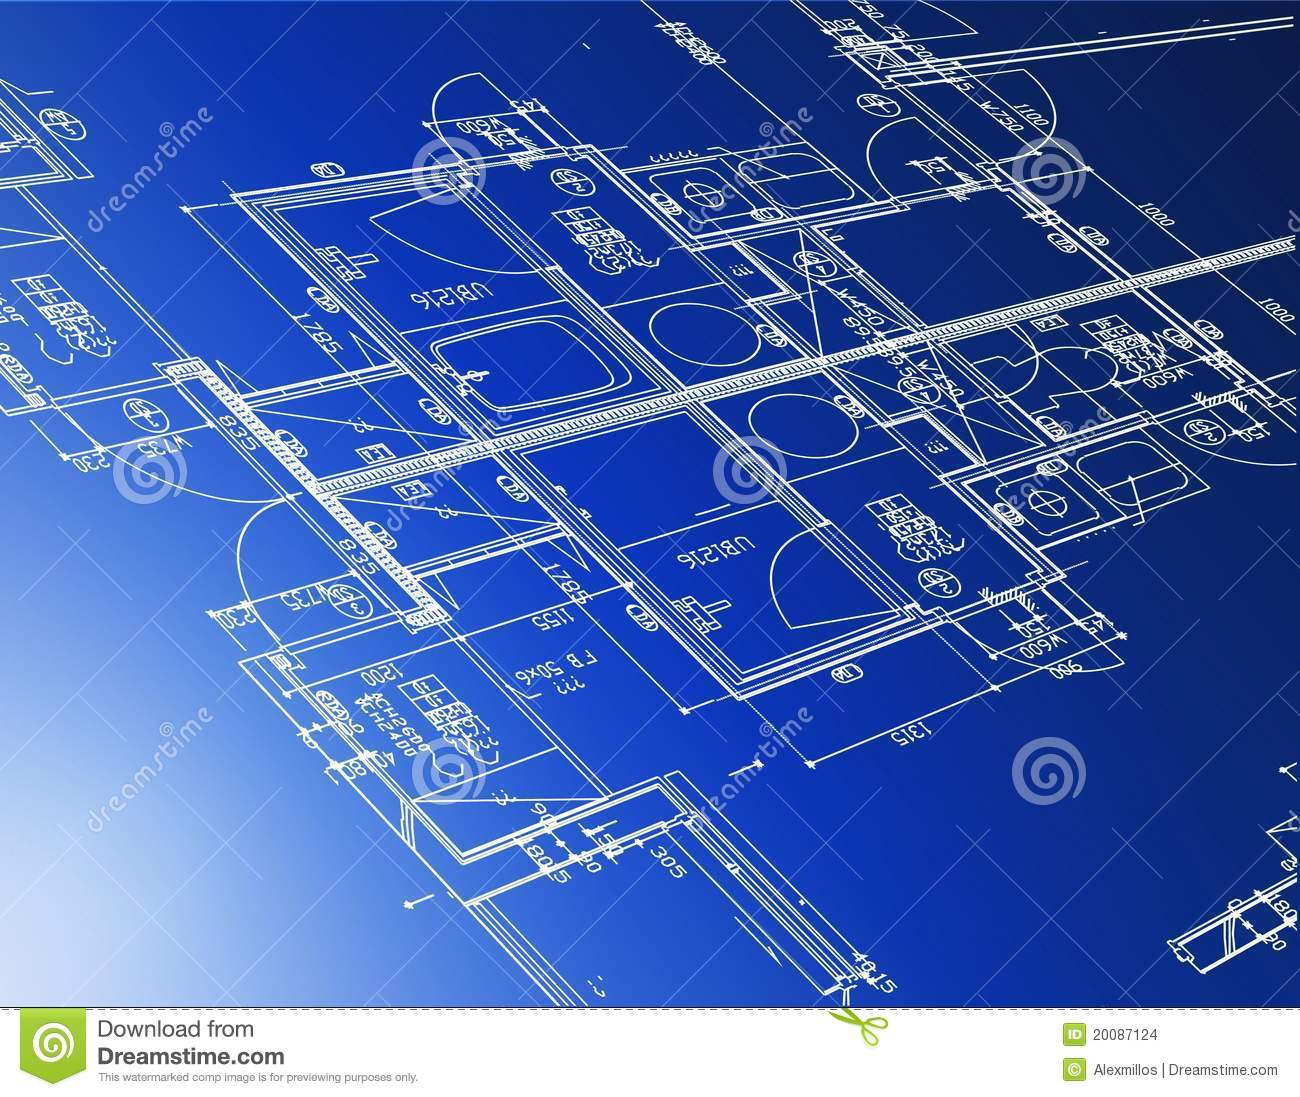 Architectural blueprints stock images image 20087124 for Architecture design blueprint